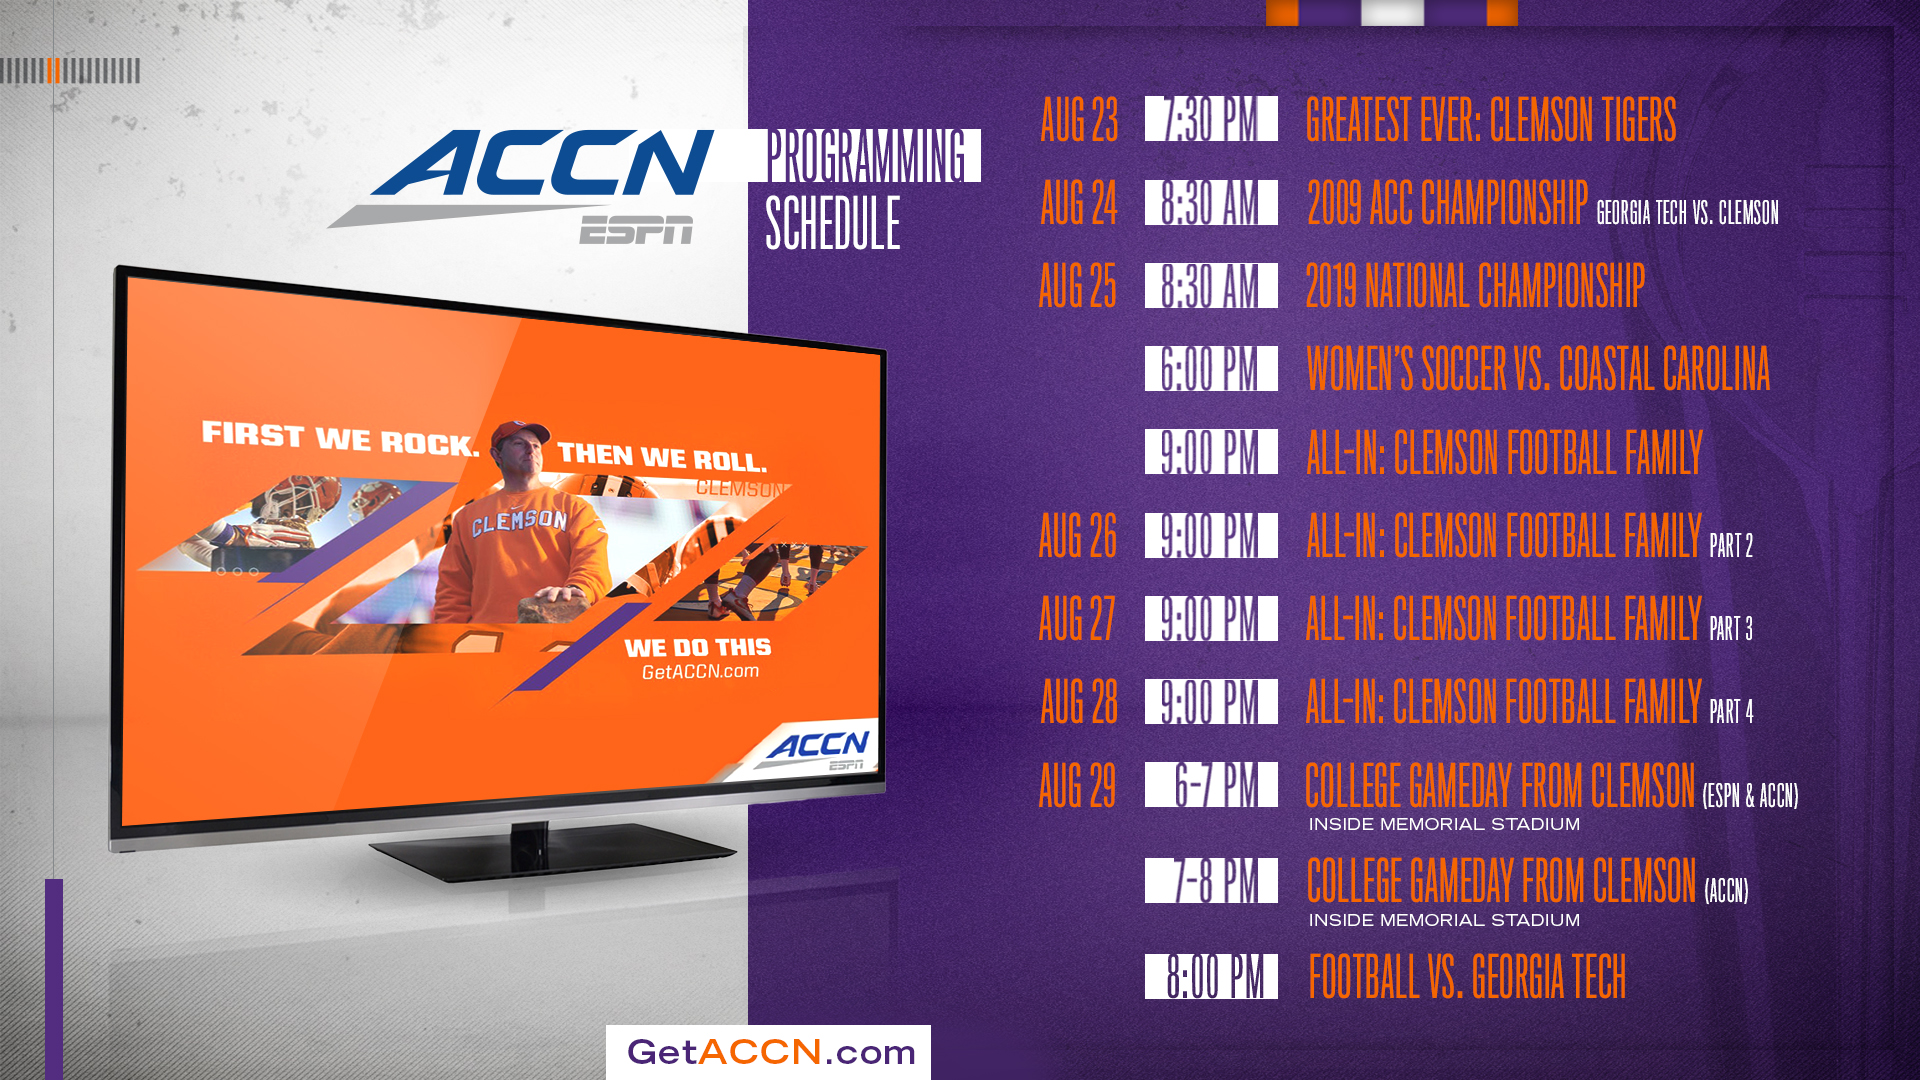 The ACCN is Coming Aug  22 – Clemson Tigers Official